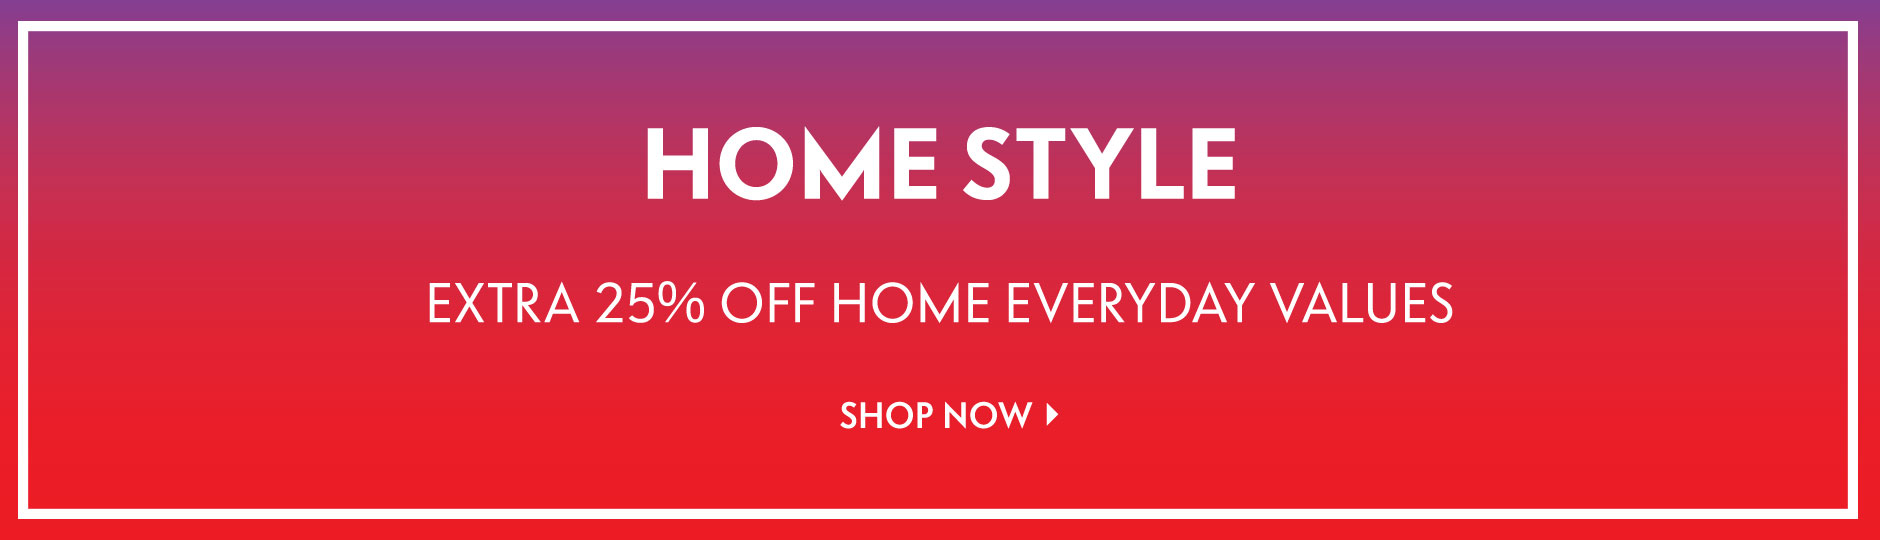 Home Style - Extra 25% off home everyday values